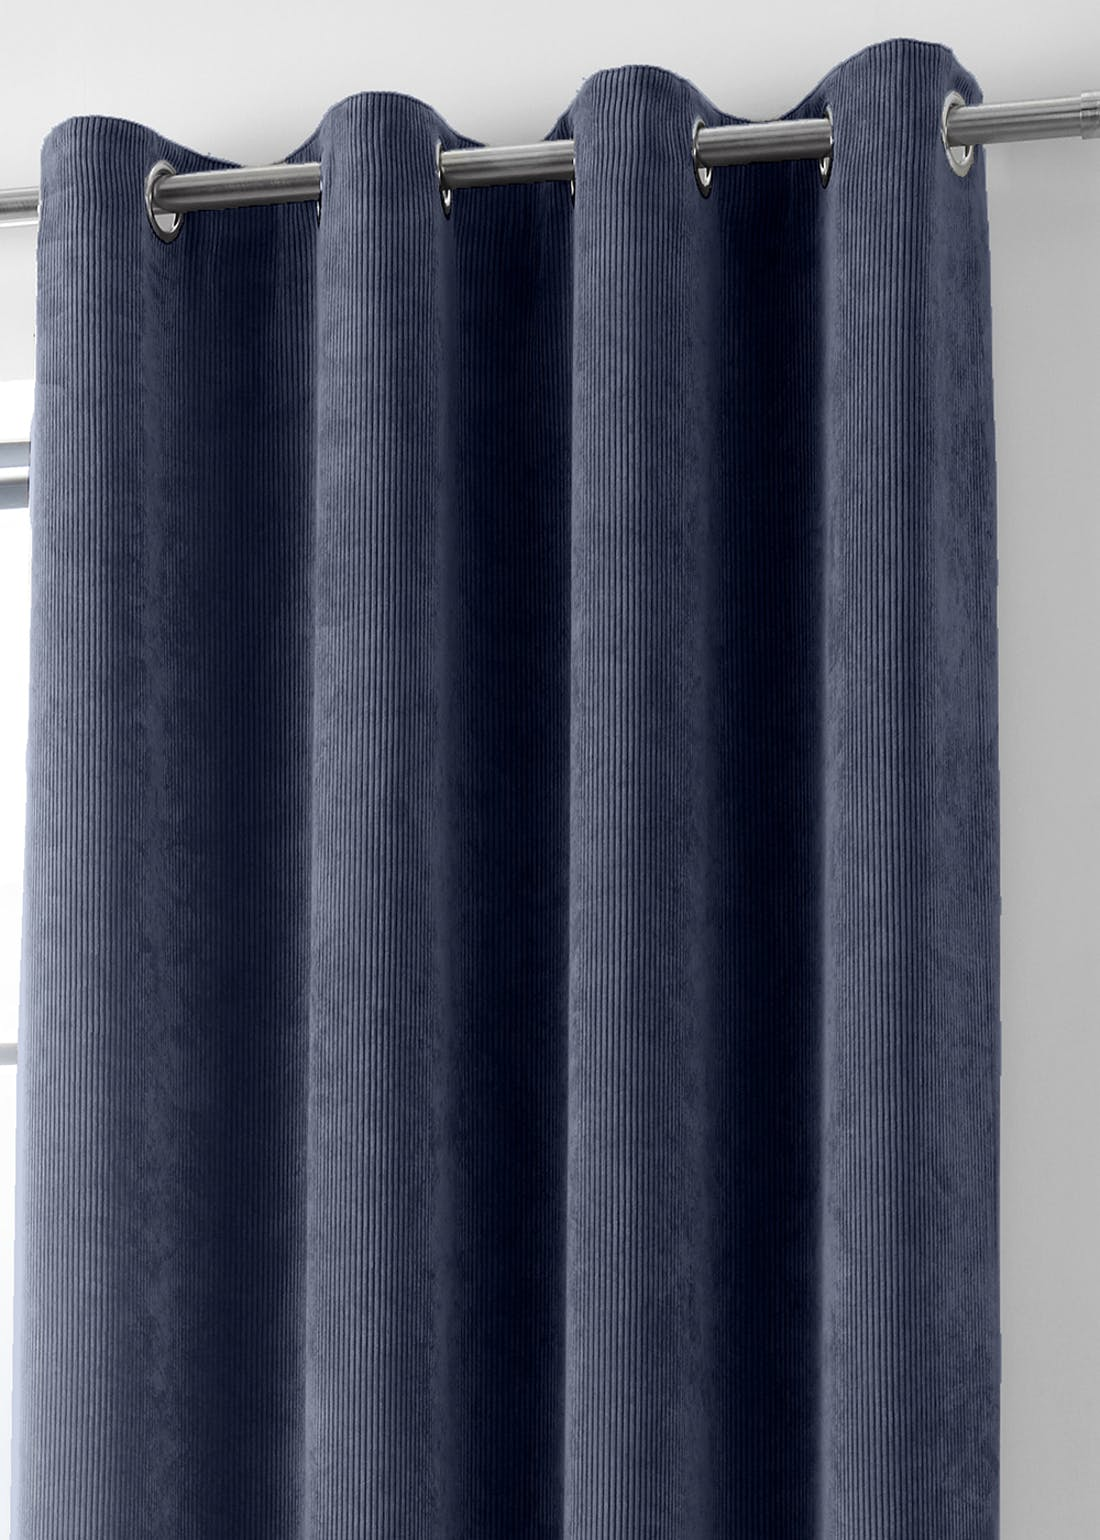 Curtina Kilbride Eyelet Curtains